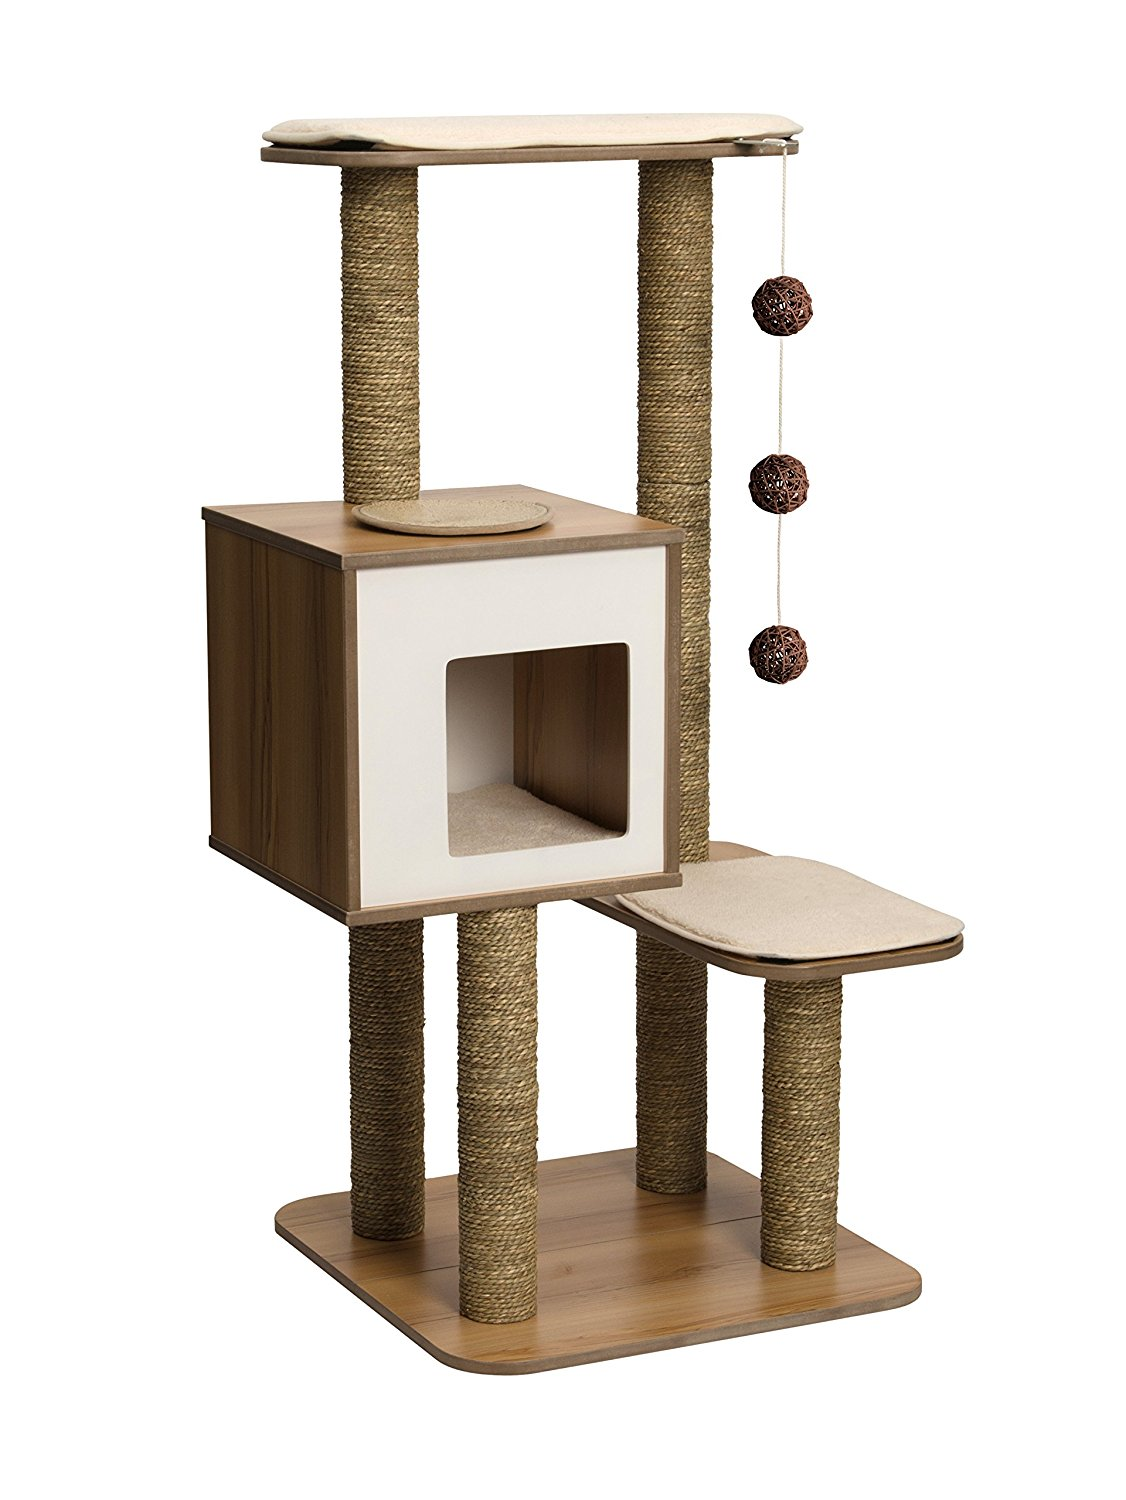 Vesper Cat Furniture V-High Base Walnut